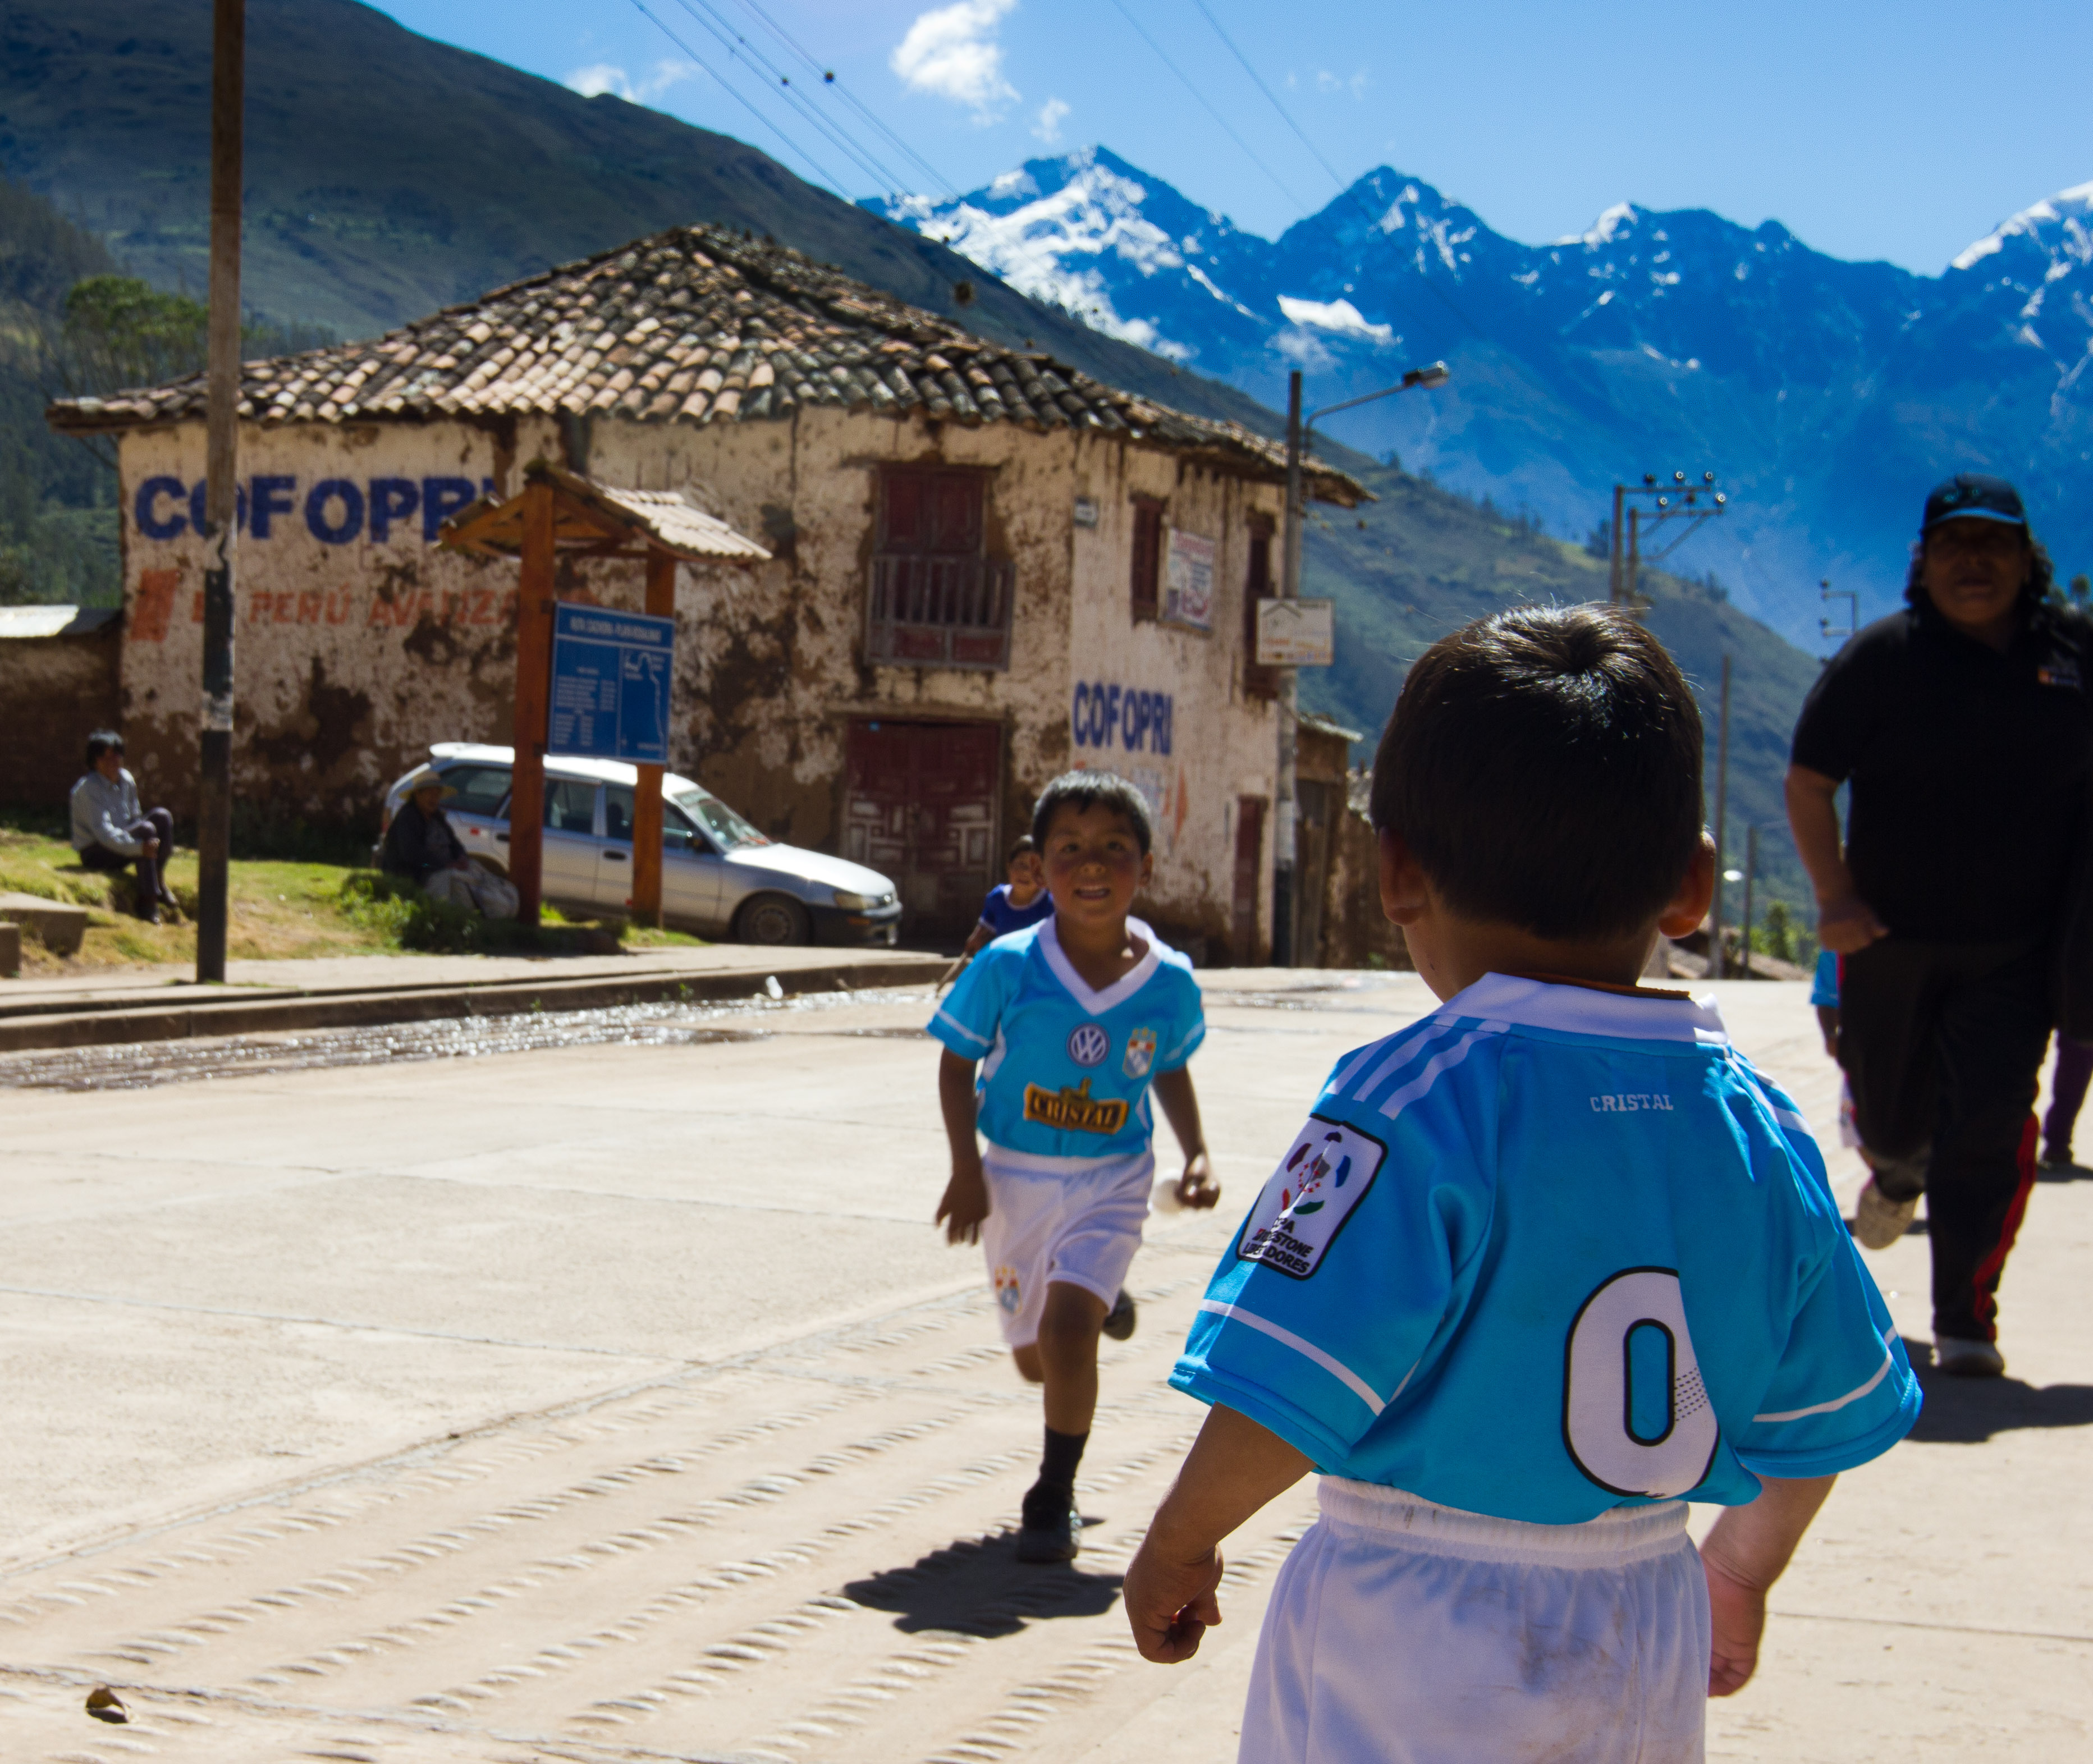 Competition at Cachora village, Peru